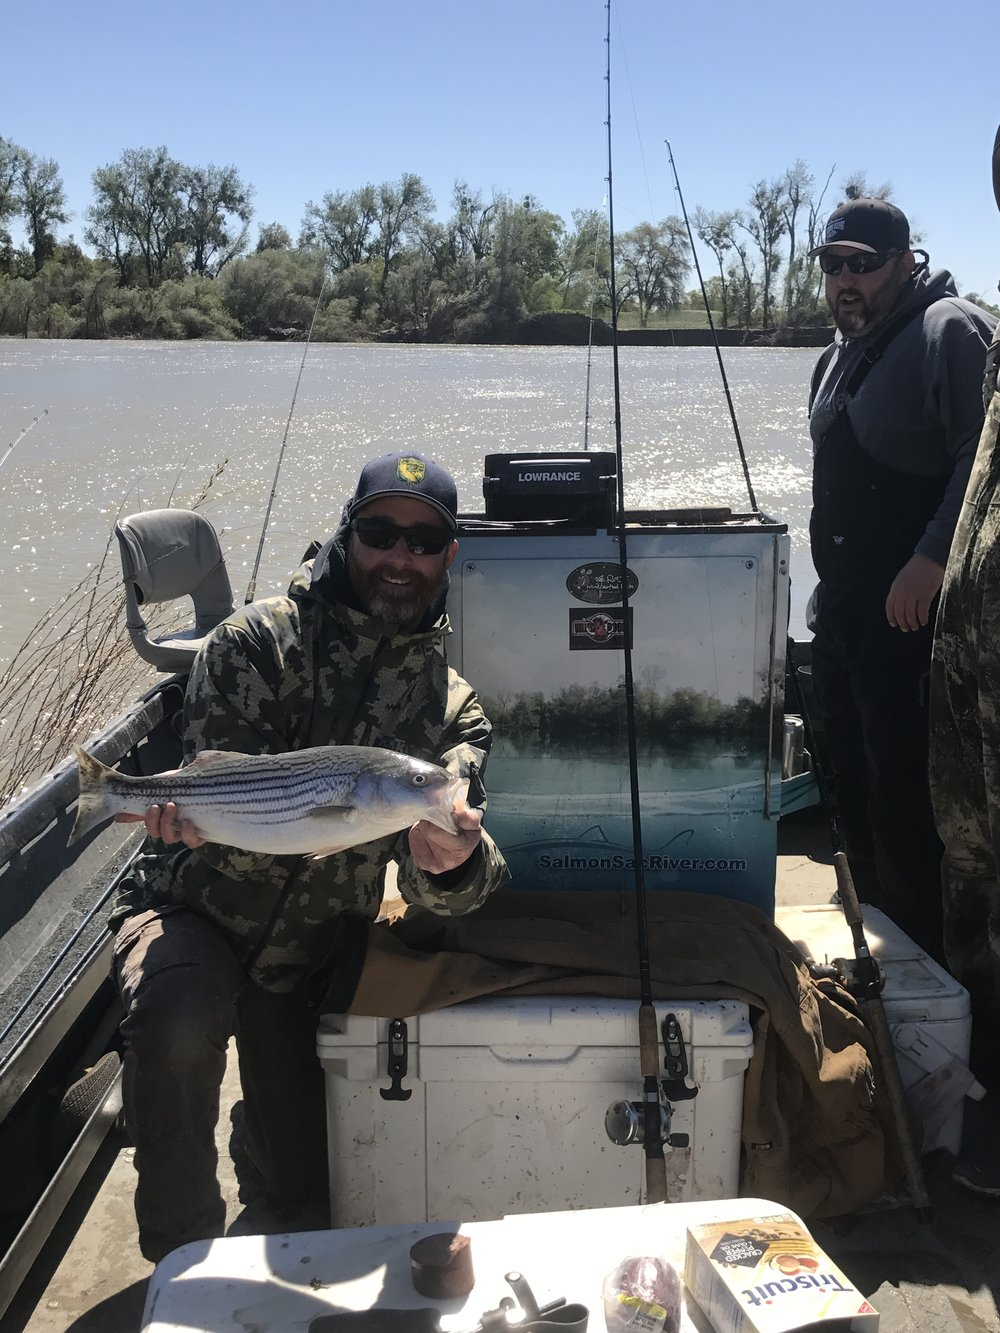 John Paterson from Corning, Ca holds up a quality striped bass he caught while on a two day alcohol induced bachelor party for Kevin Barnes (pictured on right of photo) of Corning, Ca on April 31, 2017. A very present wind chop can be seen on the river in the back ground.